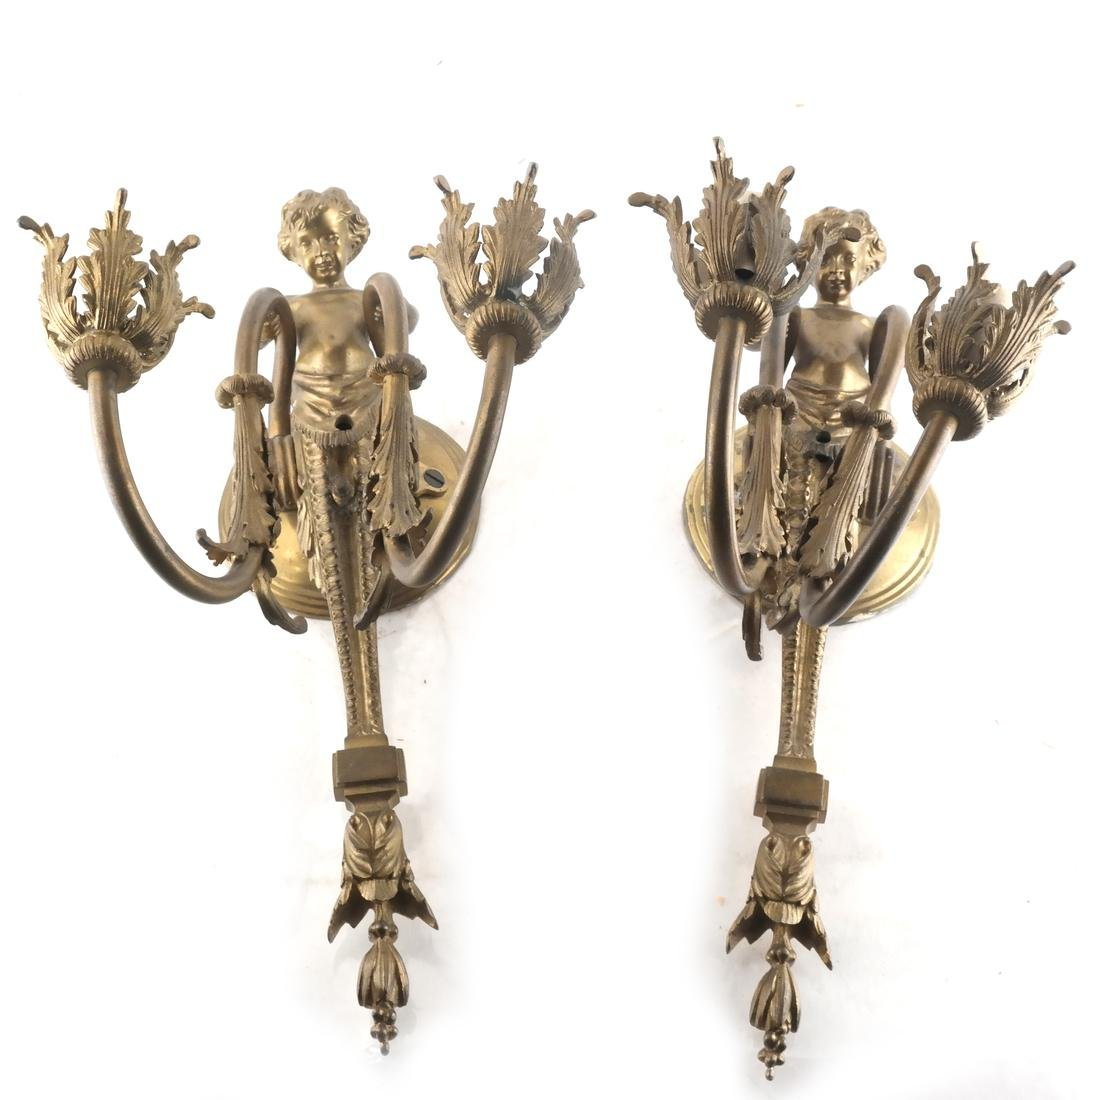 Pair of French-Style Cherub Sconces